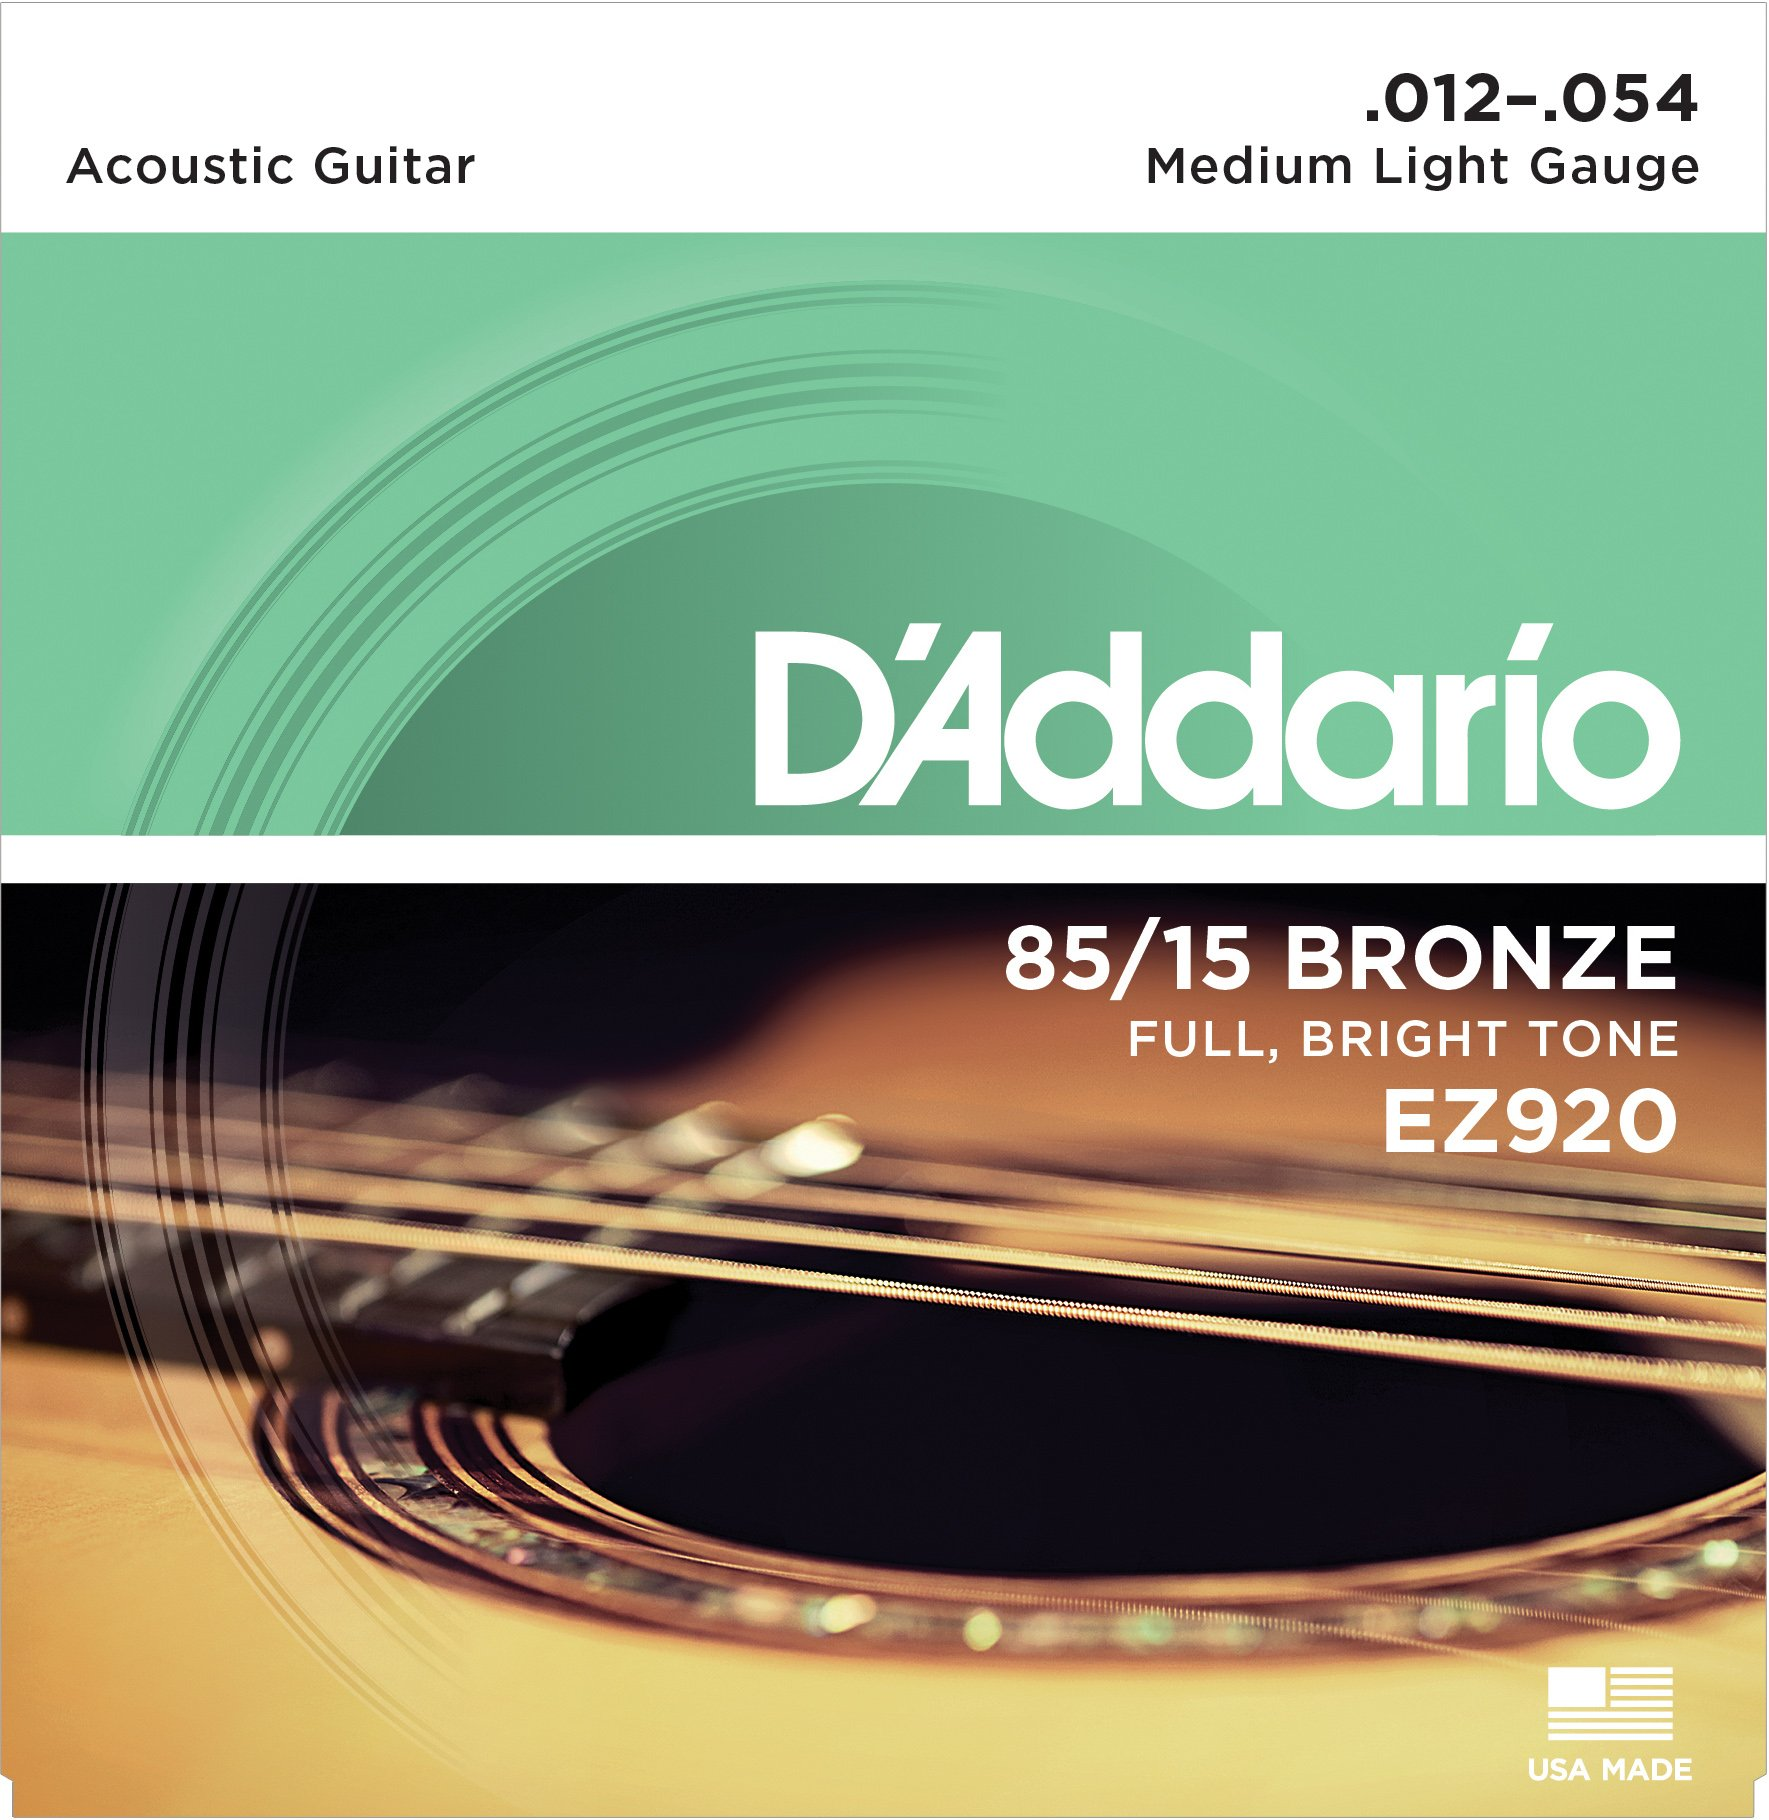 D'Addario EZ920 85/15 Bronze Medium Light Acoustic Guitar Strings product image